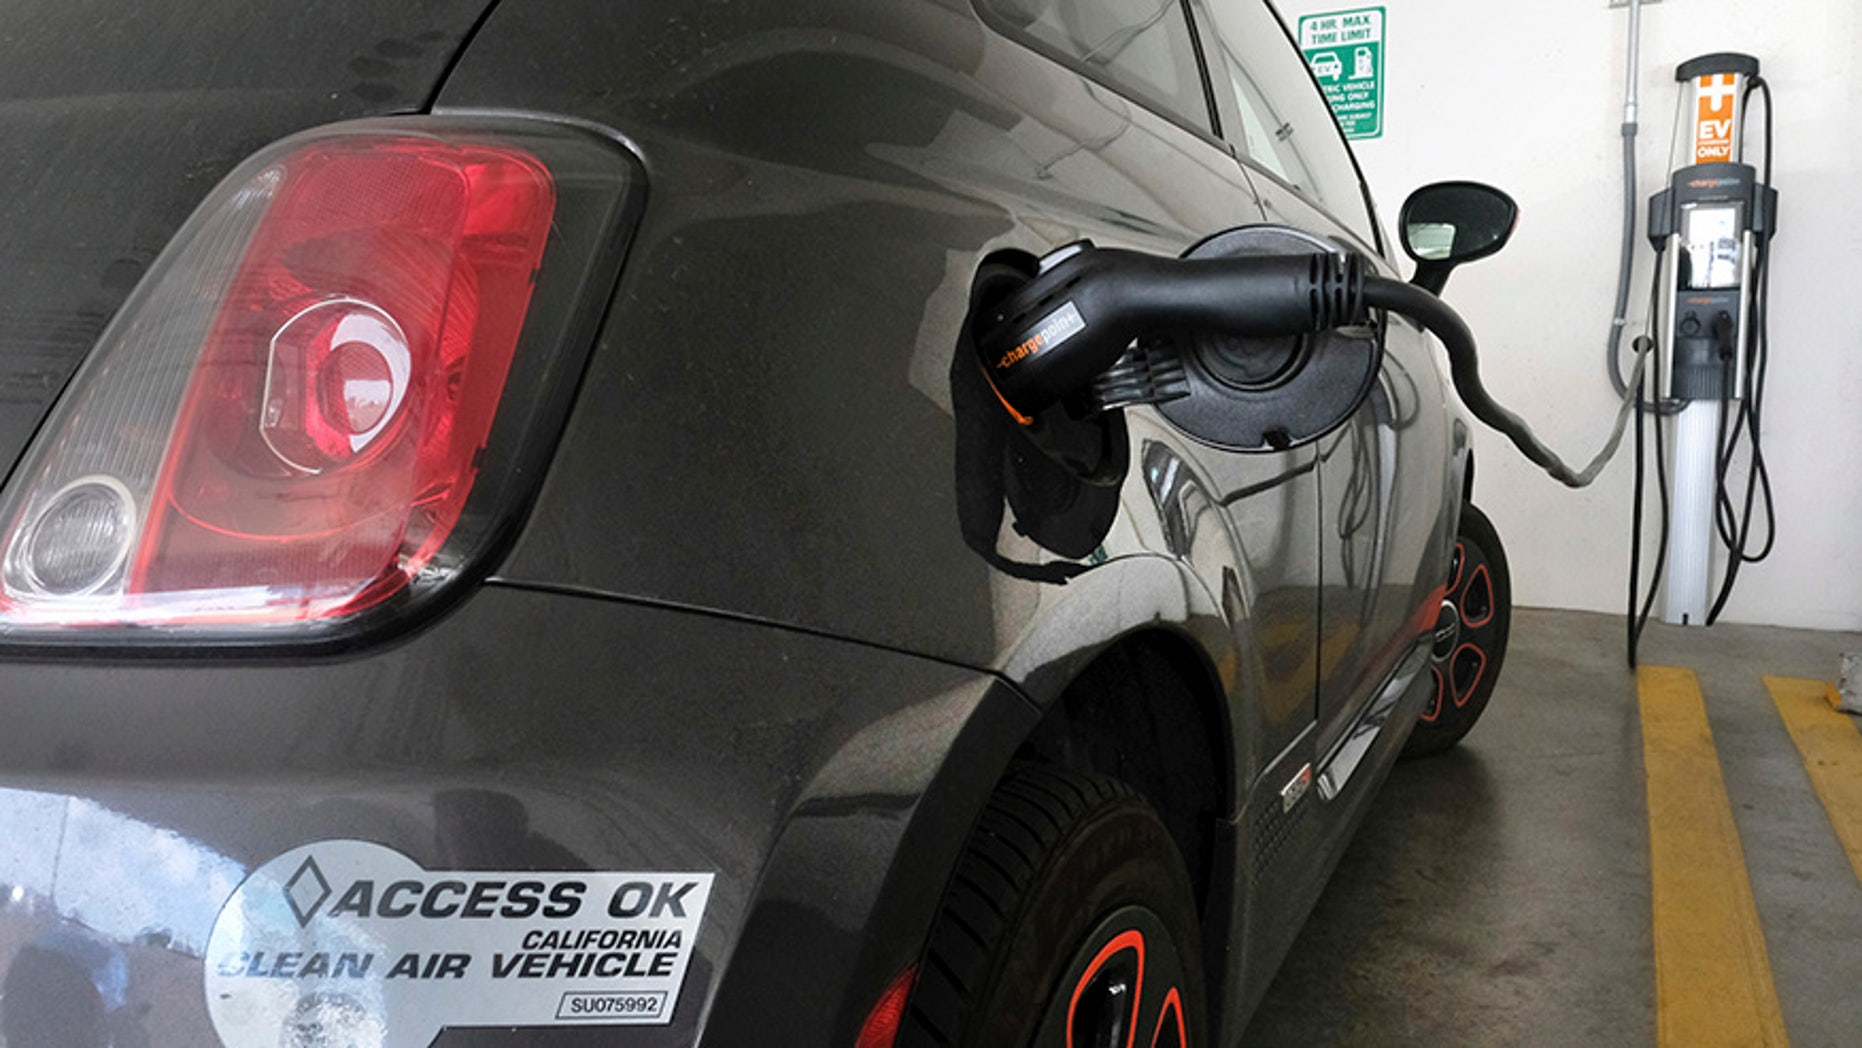 This April 25, 2016, photo shows an electric Fiat plugged into a charging station in a parking lot in Los Angeles. California could spend up to $3 billion under a bill that would widely expand its consumer rebate program for zero-emission vehicles. The Legislature is pushing forward a bill that could lift rebates from $2,500 to $10,000 or more for a compact electric car. Current rebates have done little to boost sales. (AP Photo/Richard Vogel)